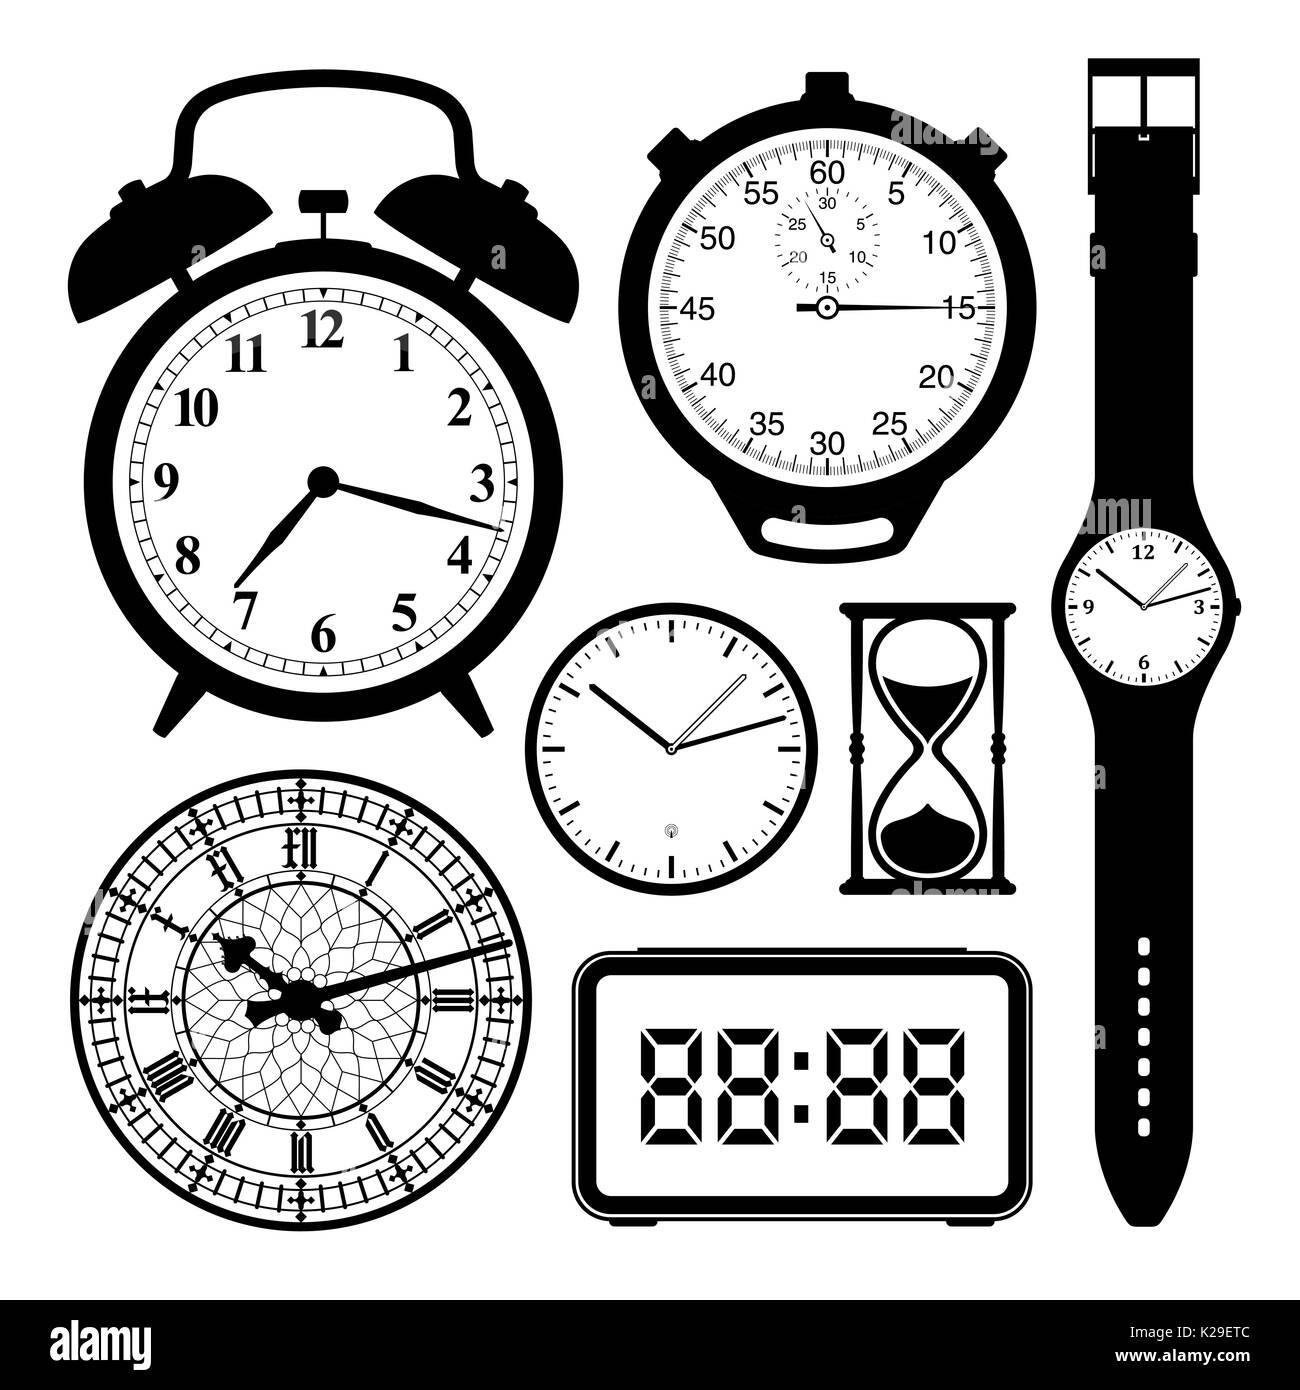 Clock and watch collection black and white - illustration - Stock Image